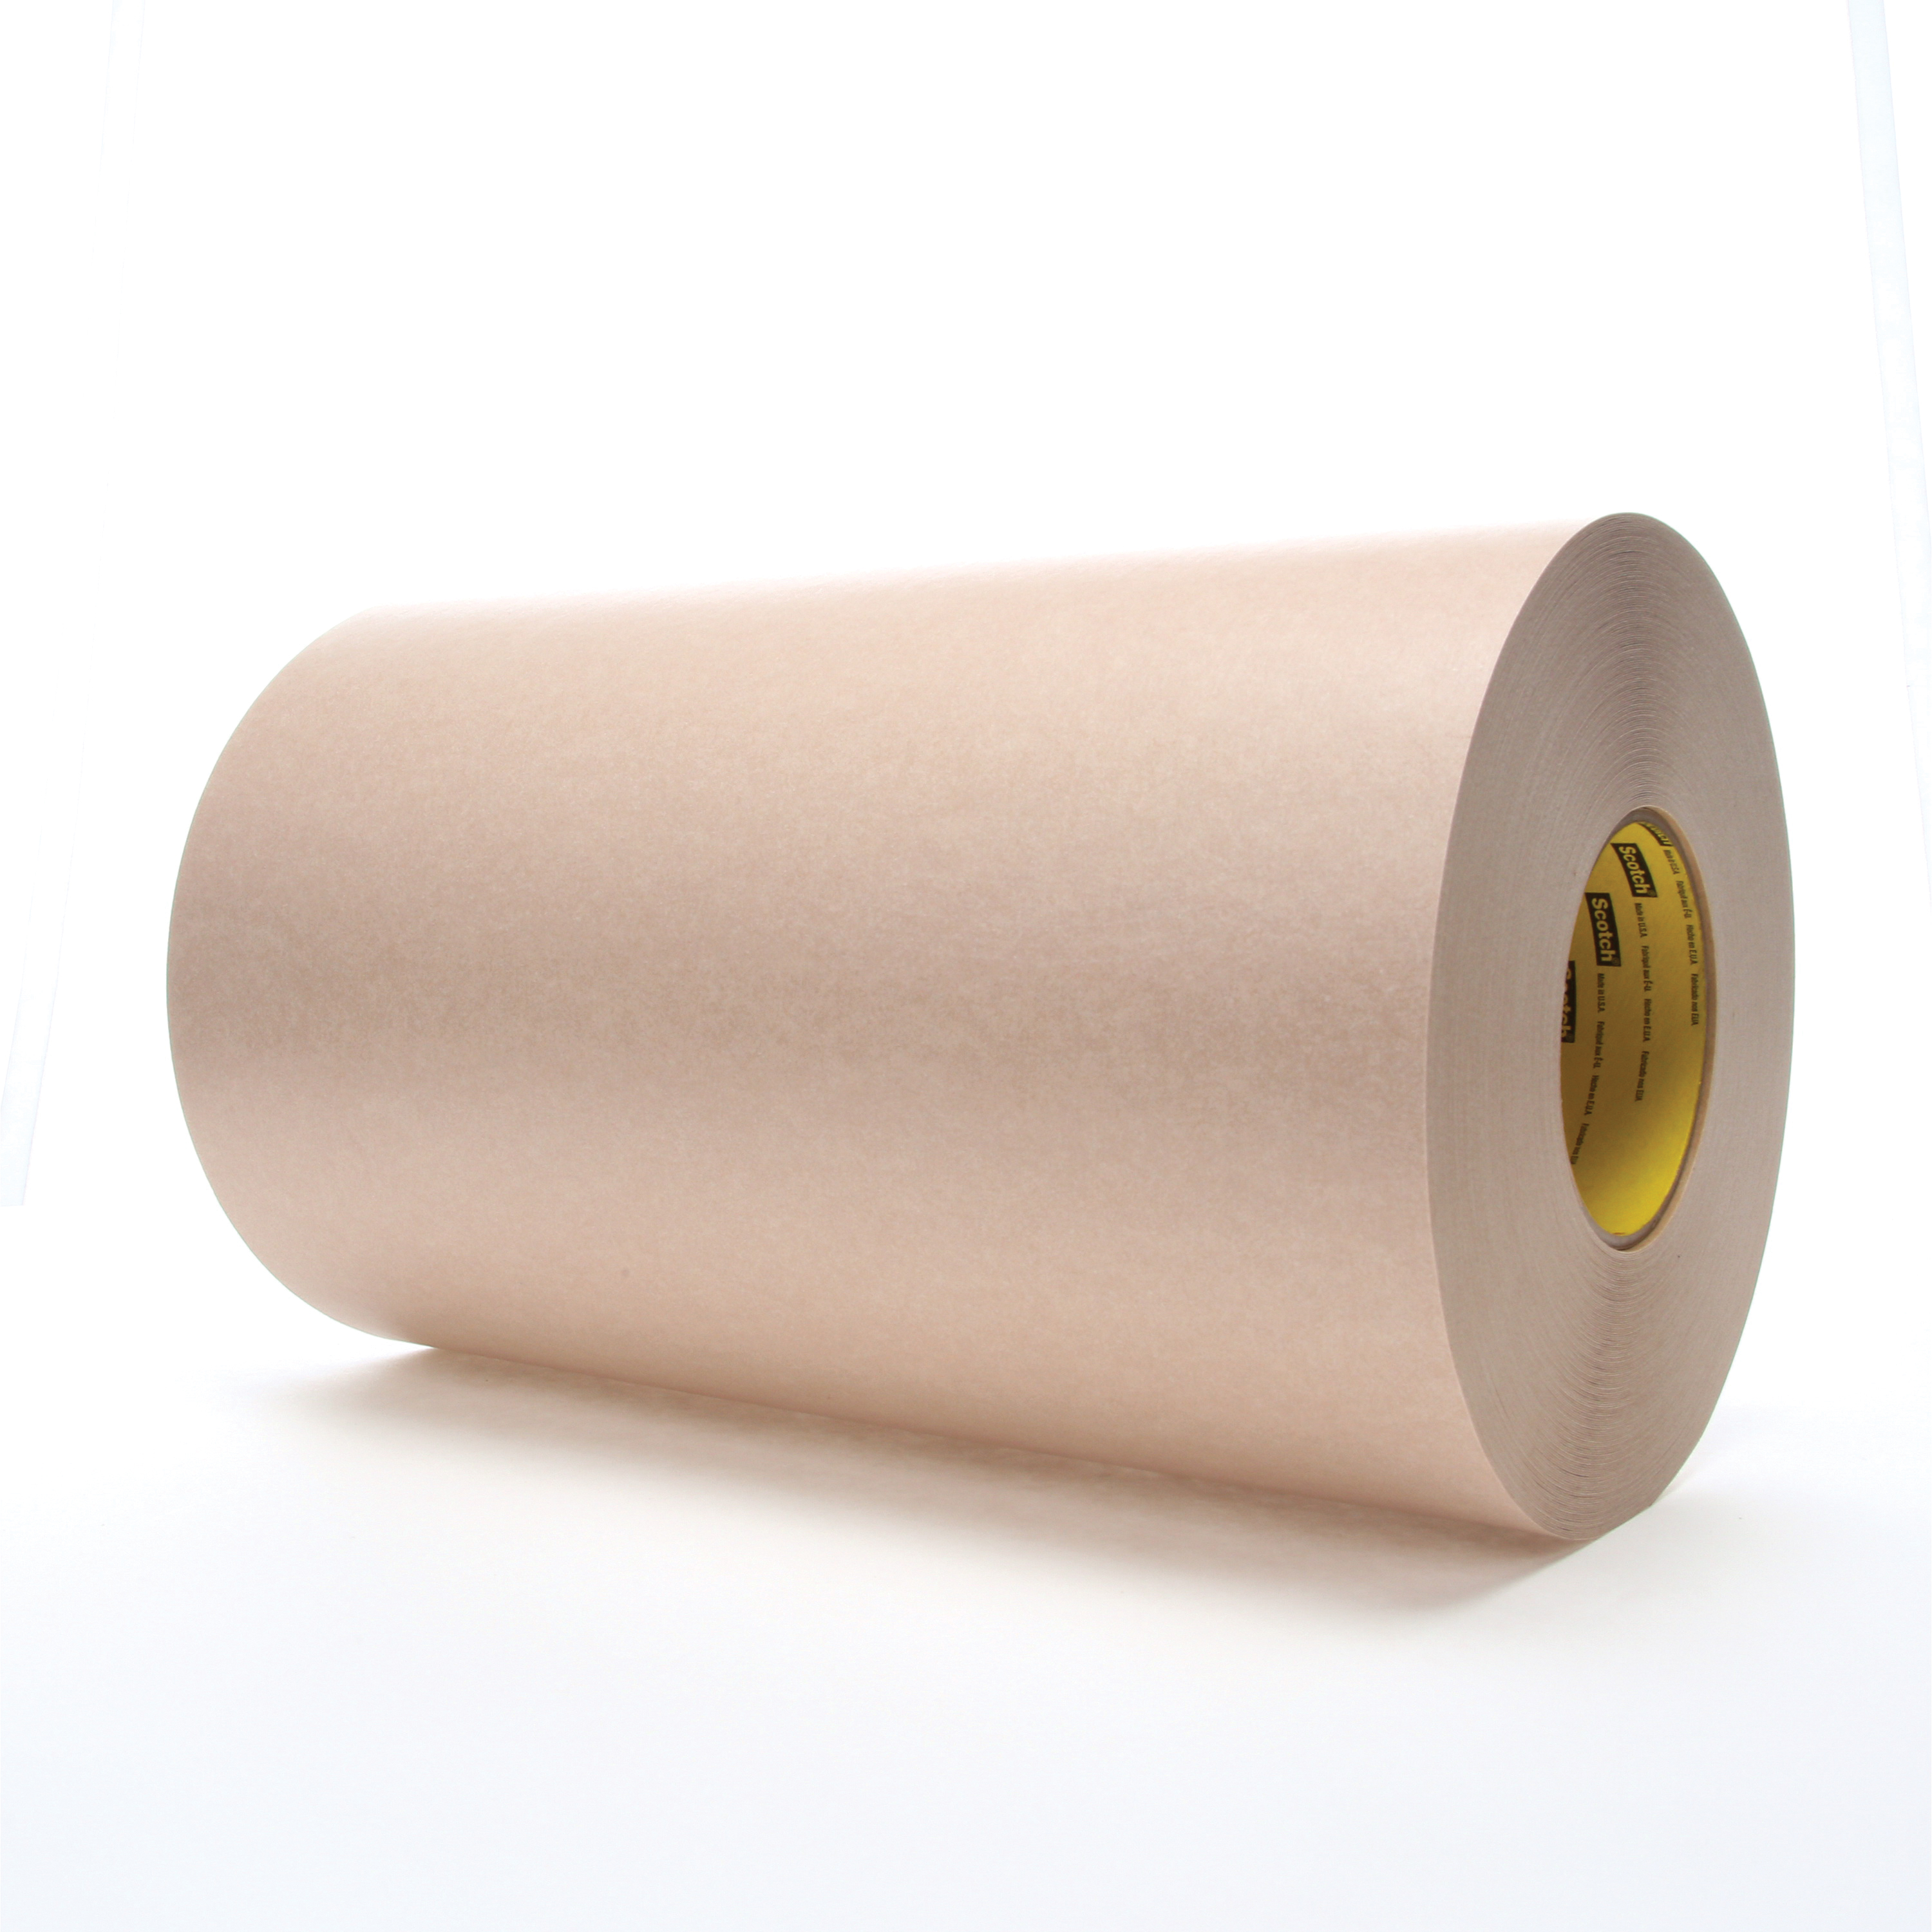 3M™ 021200-05418 Heavy Duty Protective Tape, 60 yd L x 12 in W, 16.7 mil THK, Rubber Adhesive, Flat Paper Stock Backing, Tan